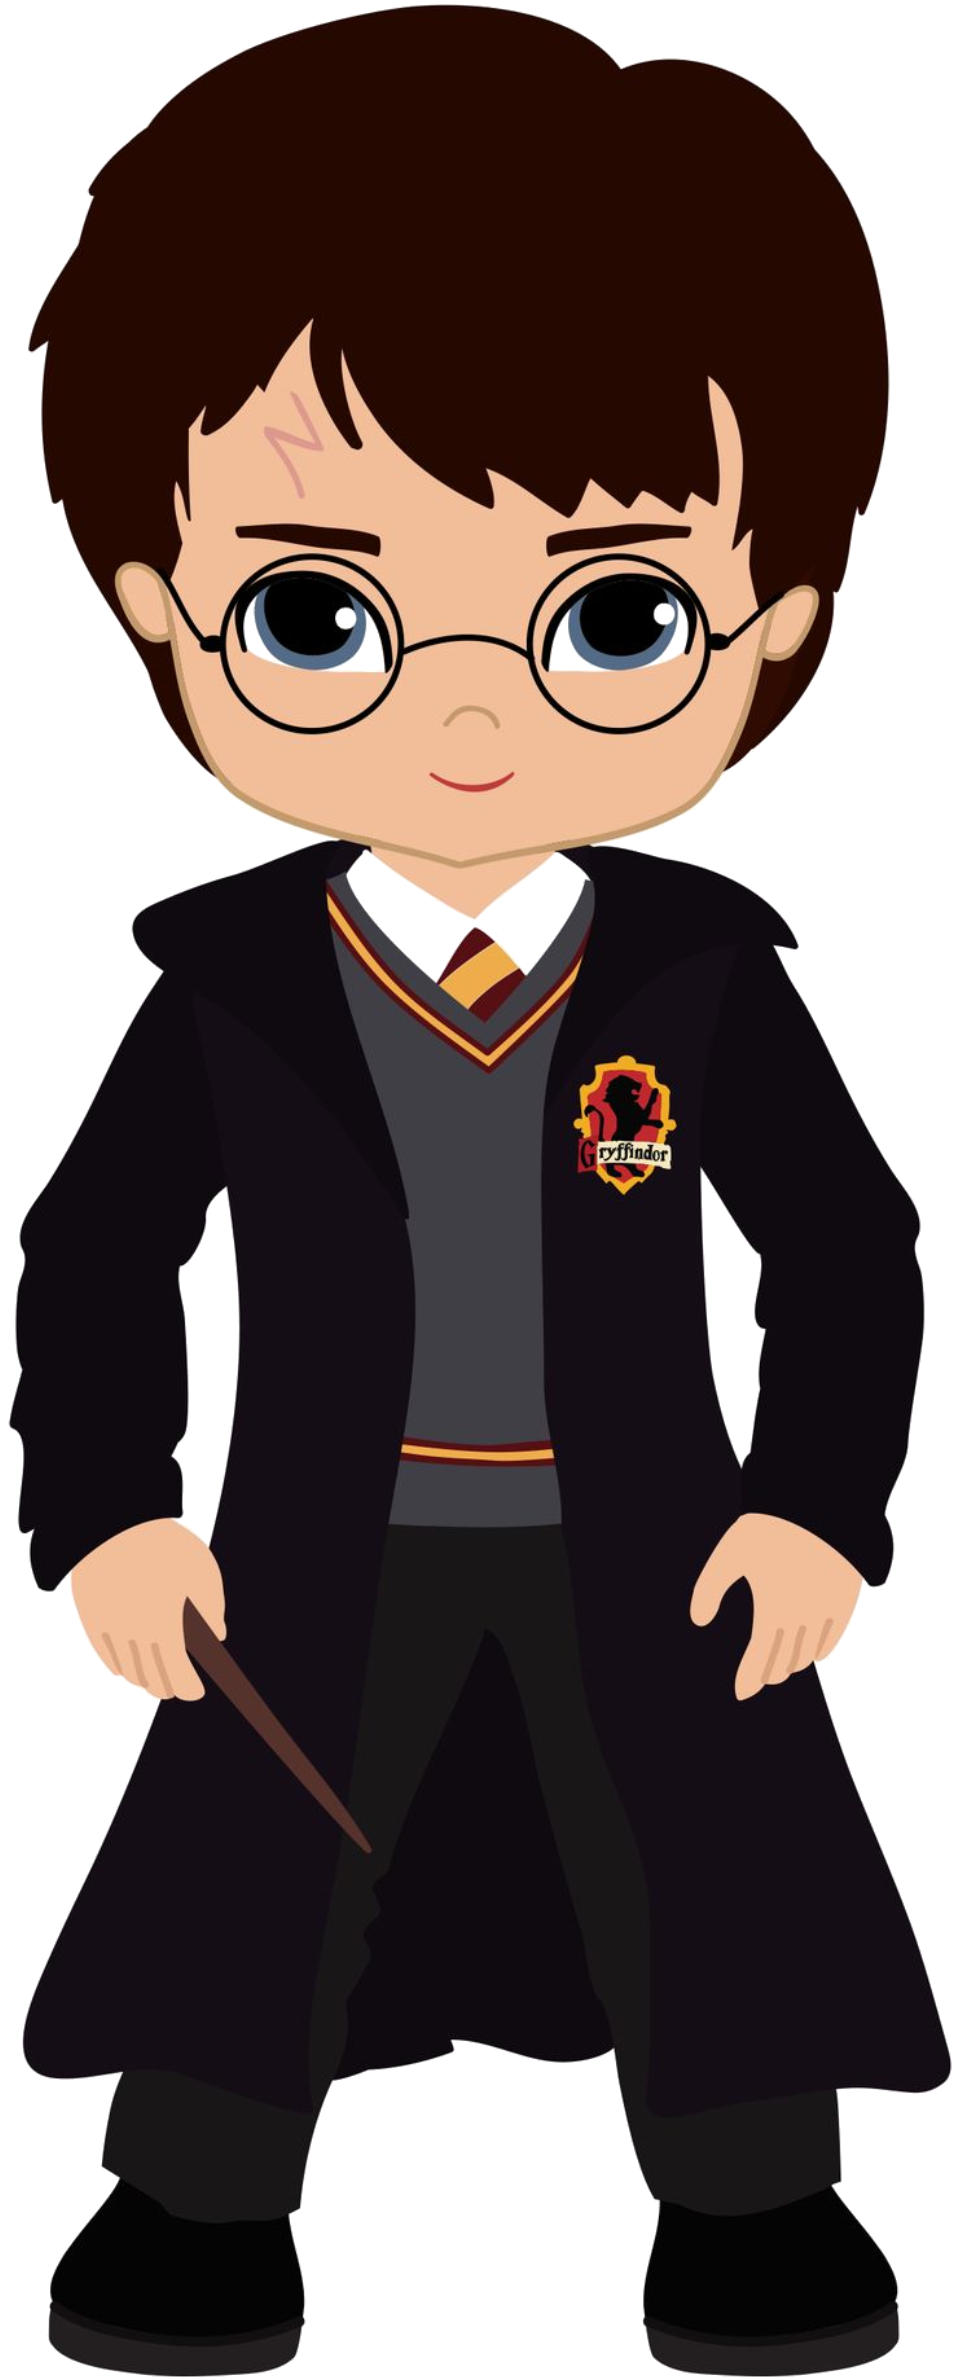 Our Printable Harry Potter Treasure Hunt Game Will Add A Magical Touch To Your Hp Party Can B Harry Potter Clip Art Harry Potter Cartoon Harry Potter Drawings